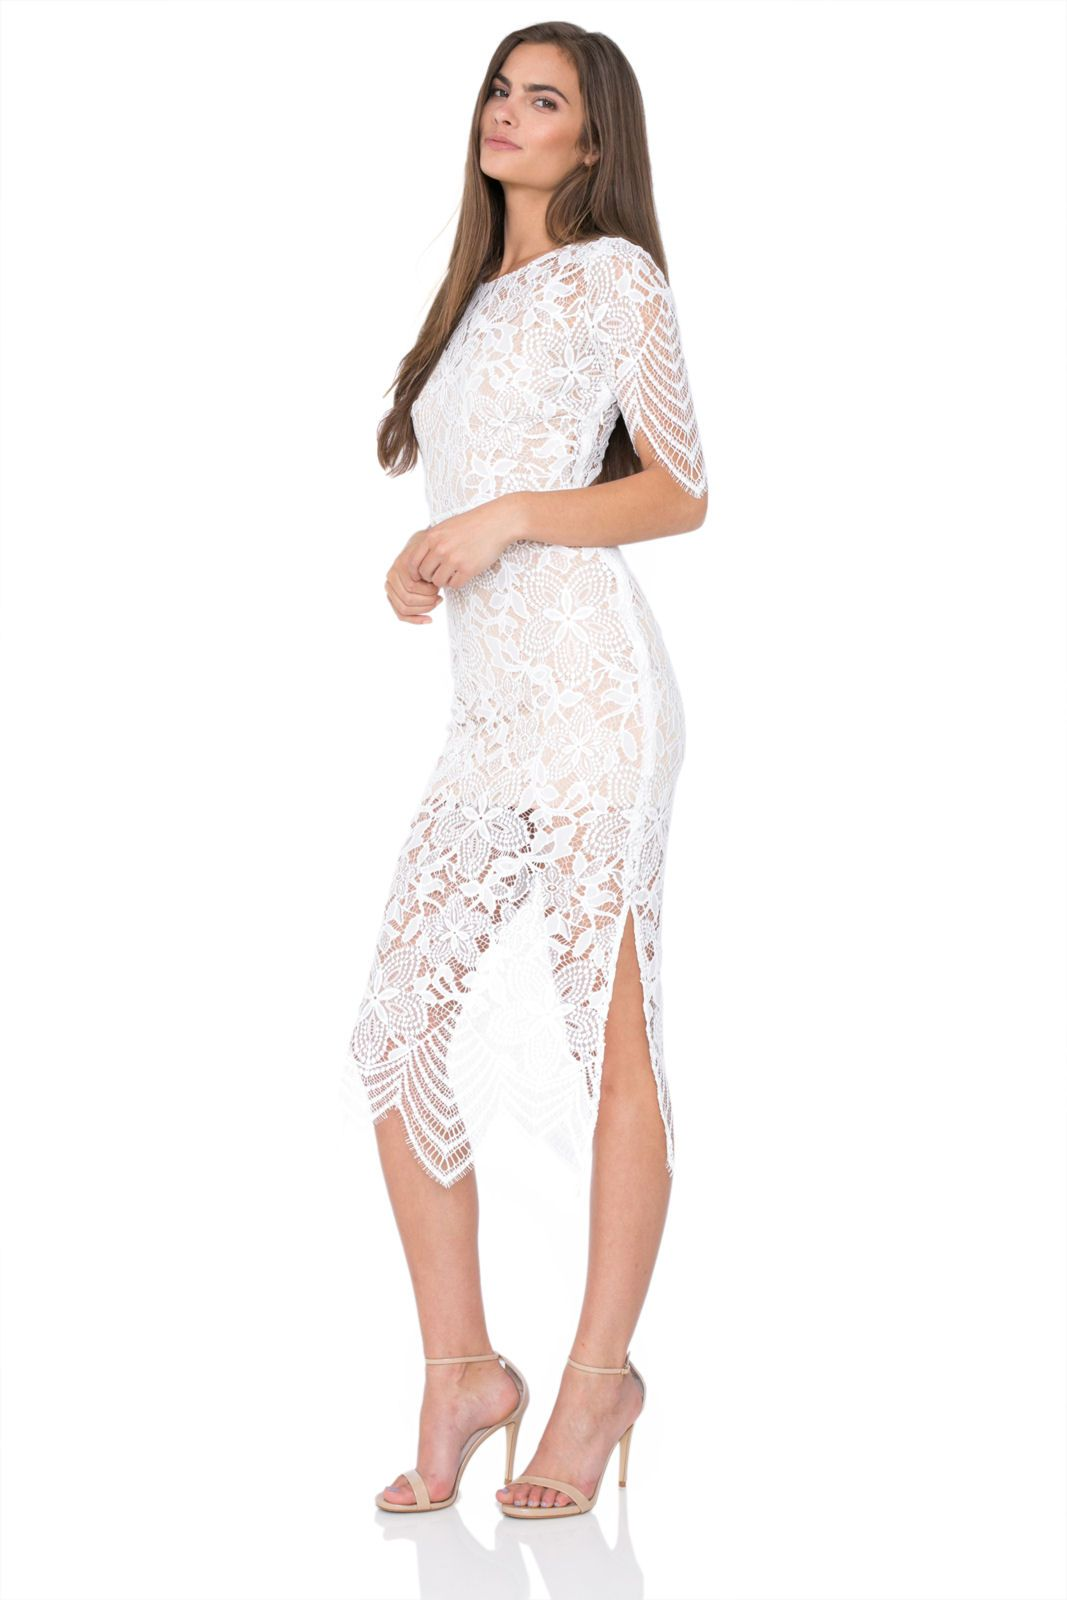 For love and lemon luaus maxi dresses white